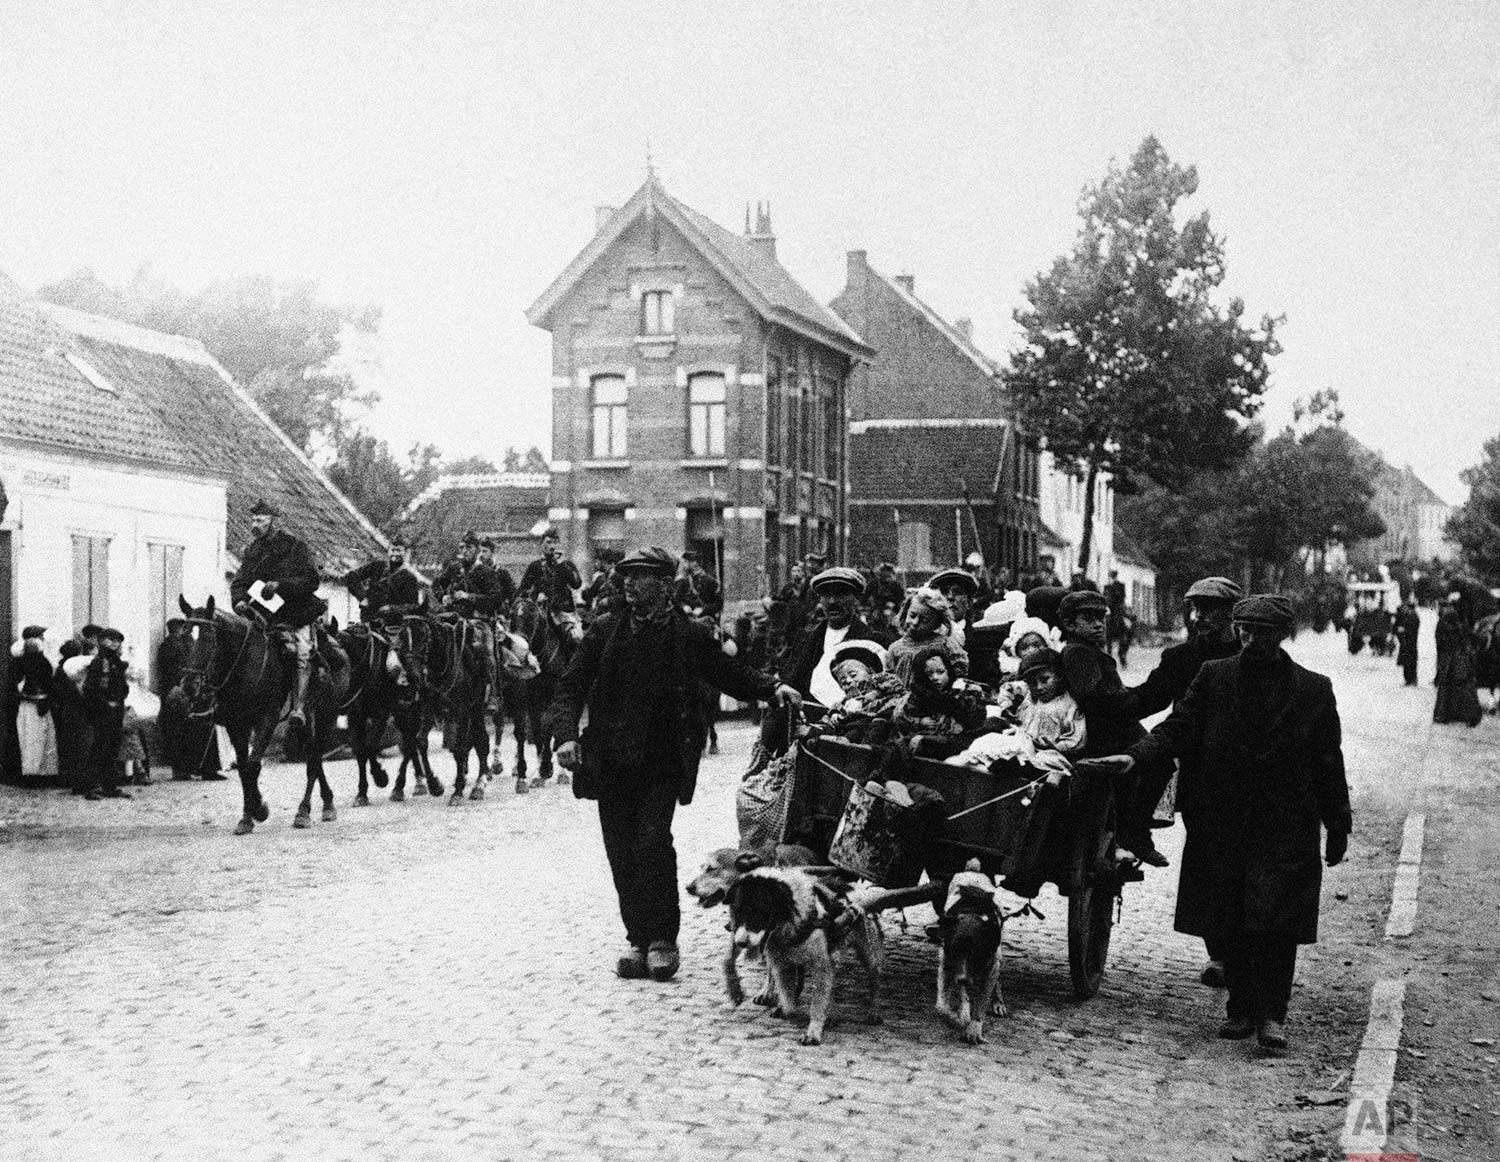 In this Oct. 14, 1914 photo, Belgian civilians and a cavalry detail move out of the pathway of the German advance during World War One in Antwerp, Belgium. (AP Photo)